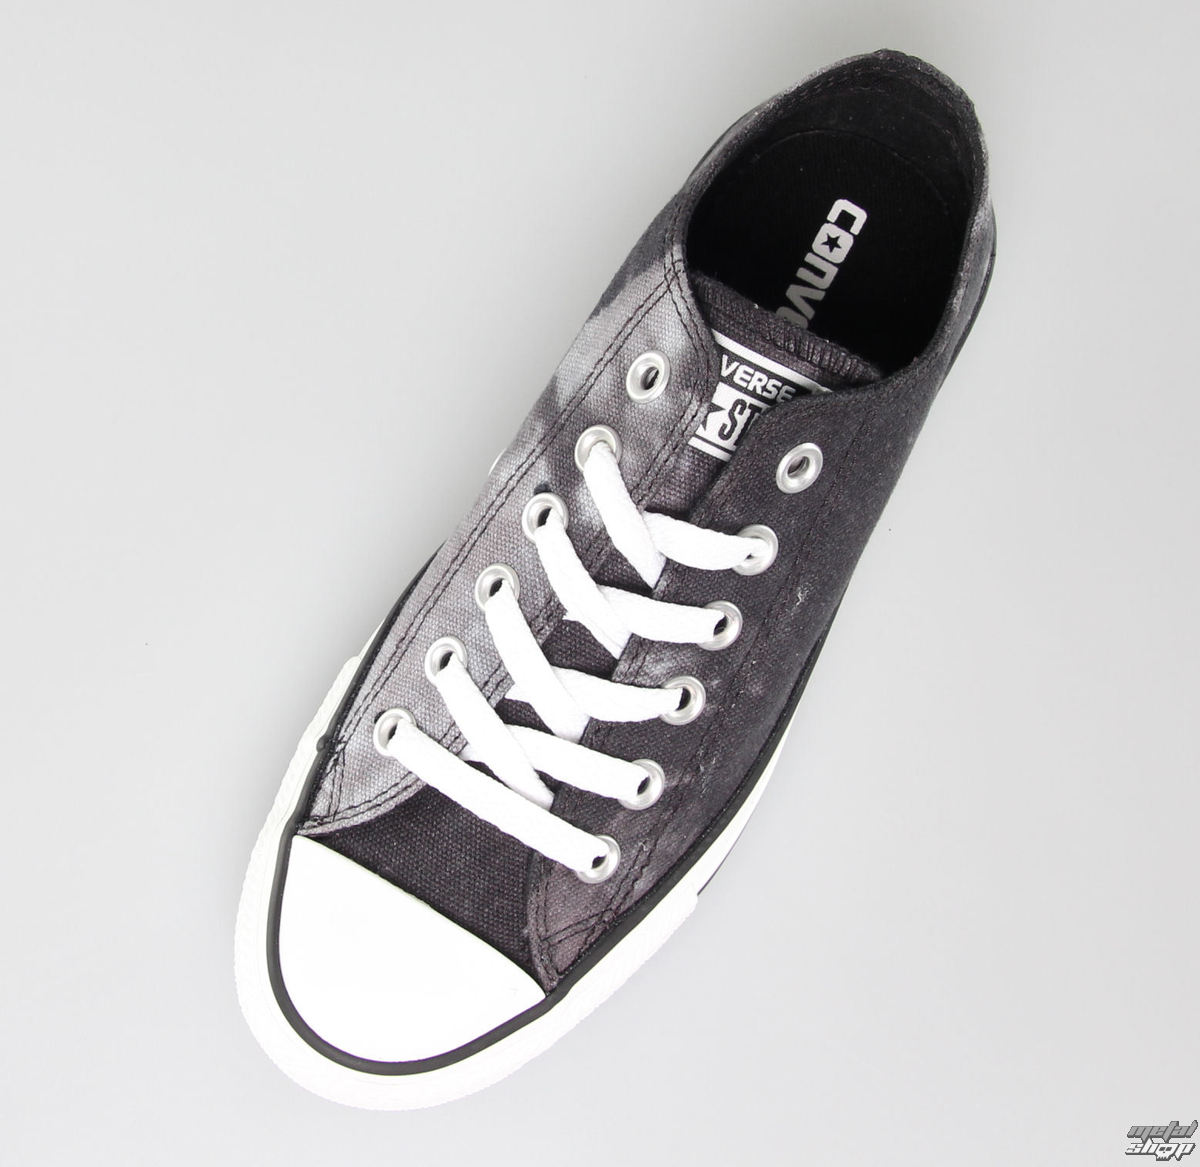 damen schuhe converse chuck taylor all star black wht gr e 39 ebay. Black Bedroom Furniture Sets. Home Design Ideas